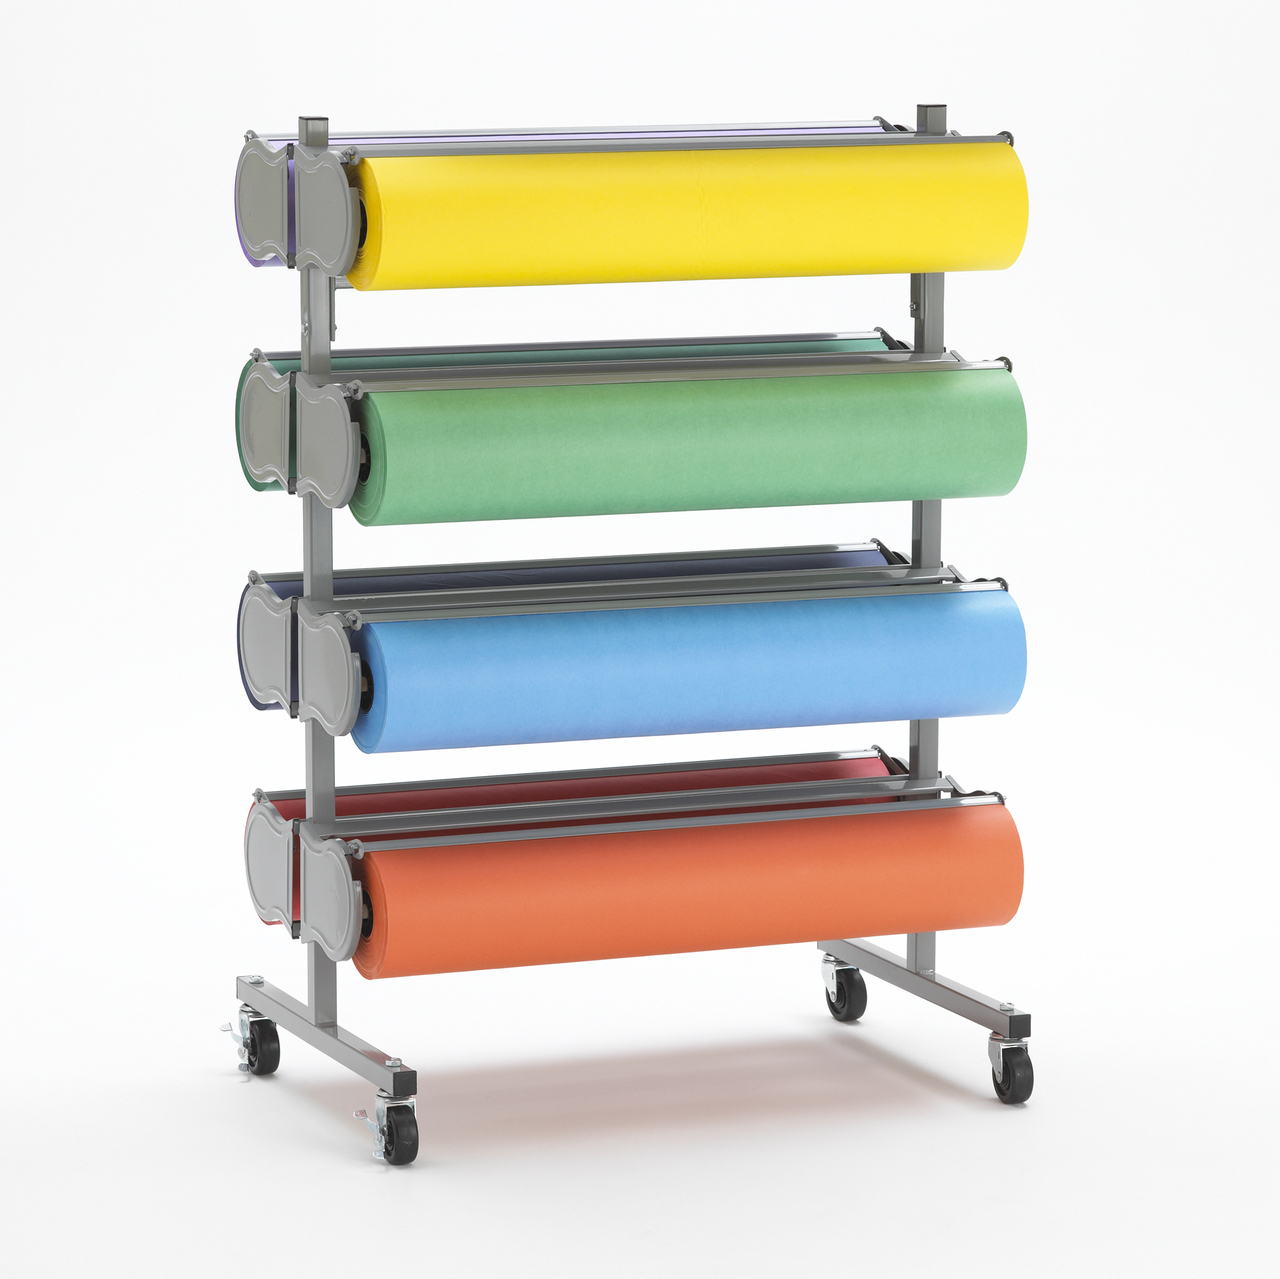 Bulletin Board Paper Roll Holder, Storage, Dispenser